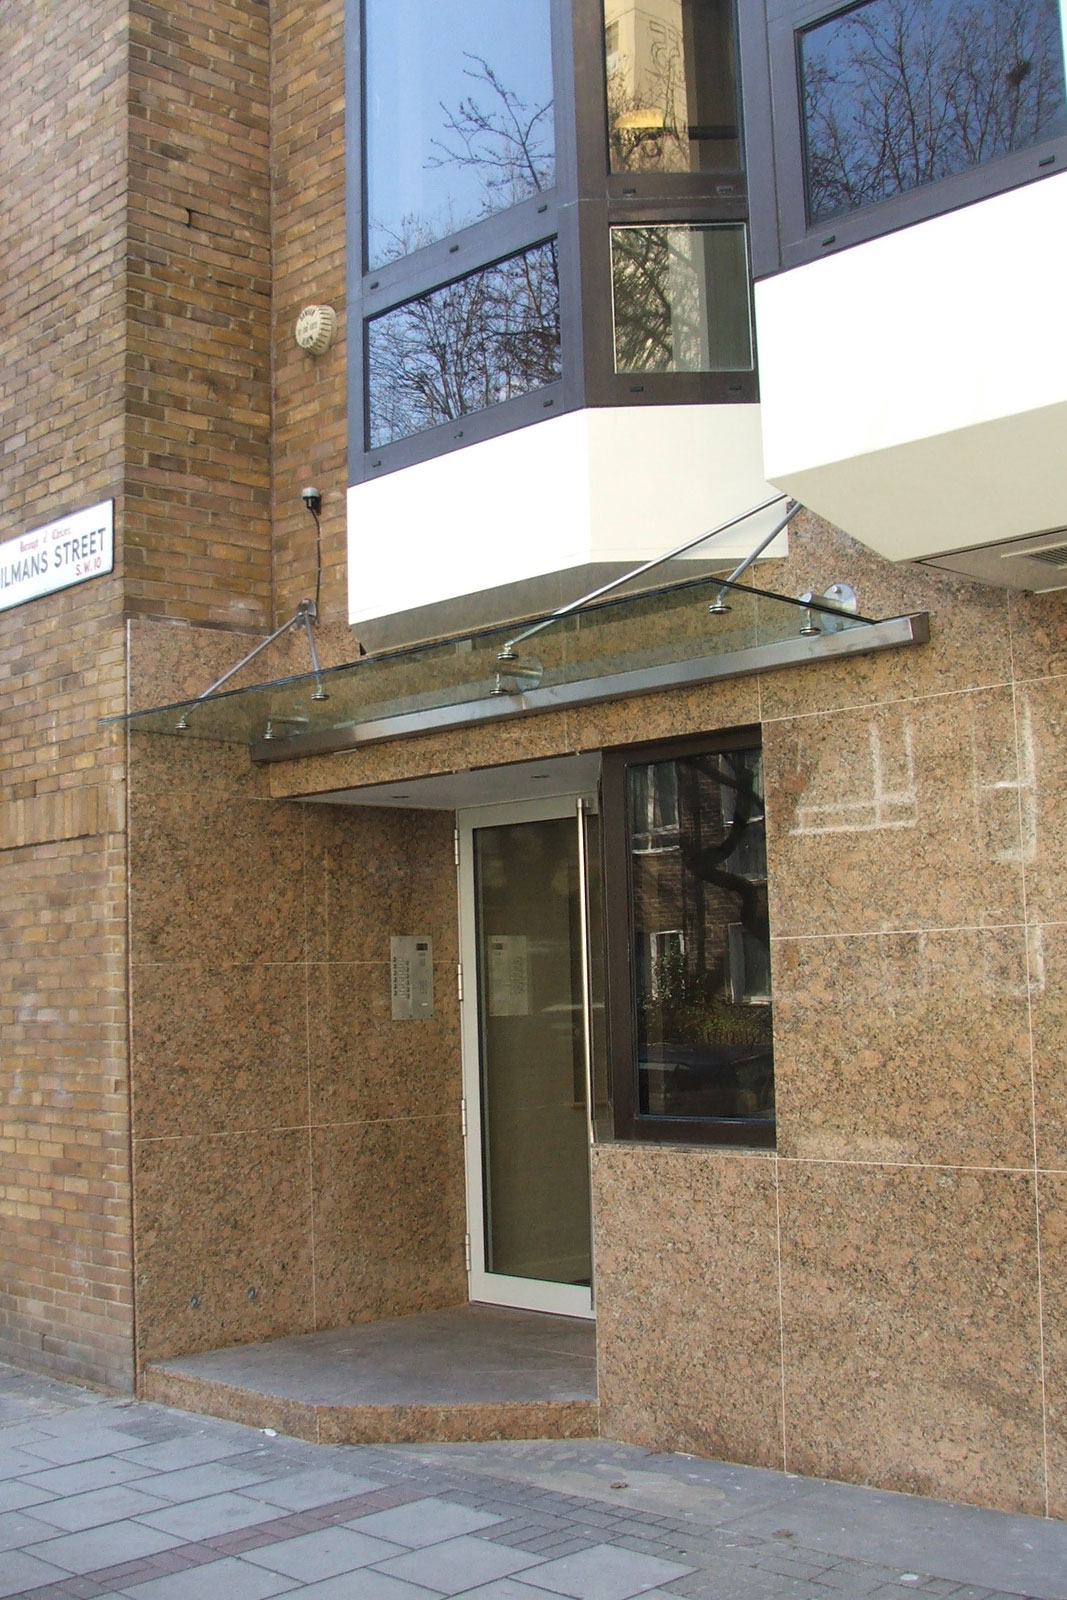 Frameless glass canopy with stainless steel fixings